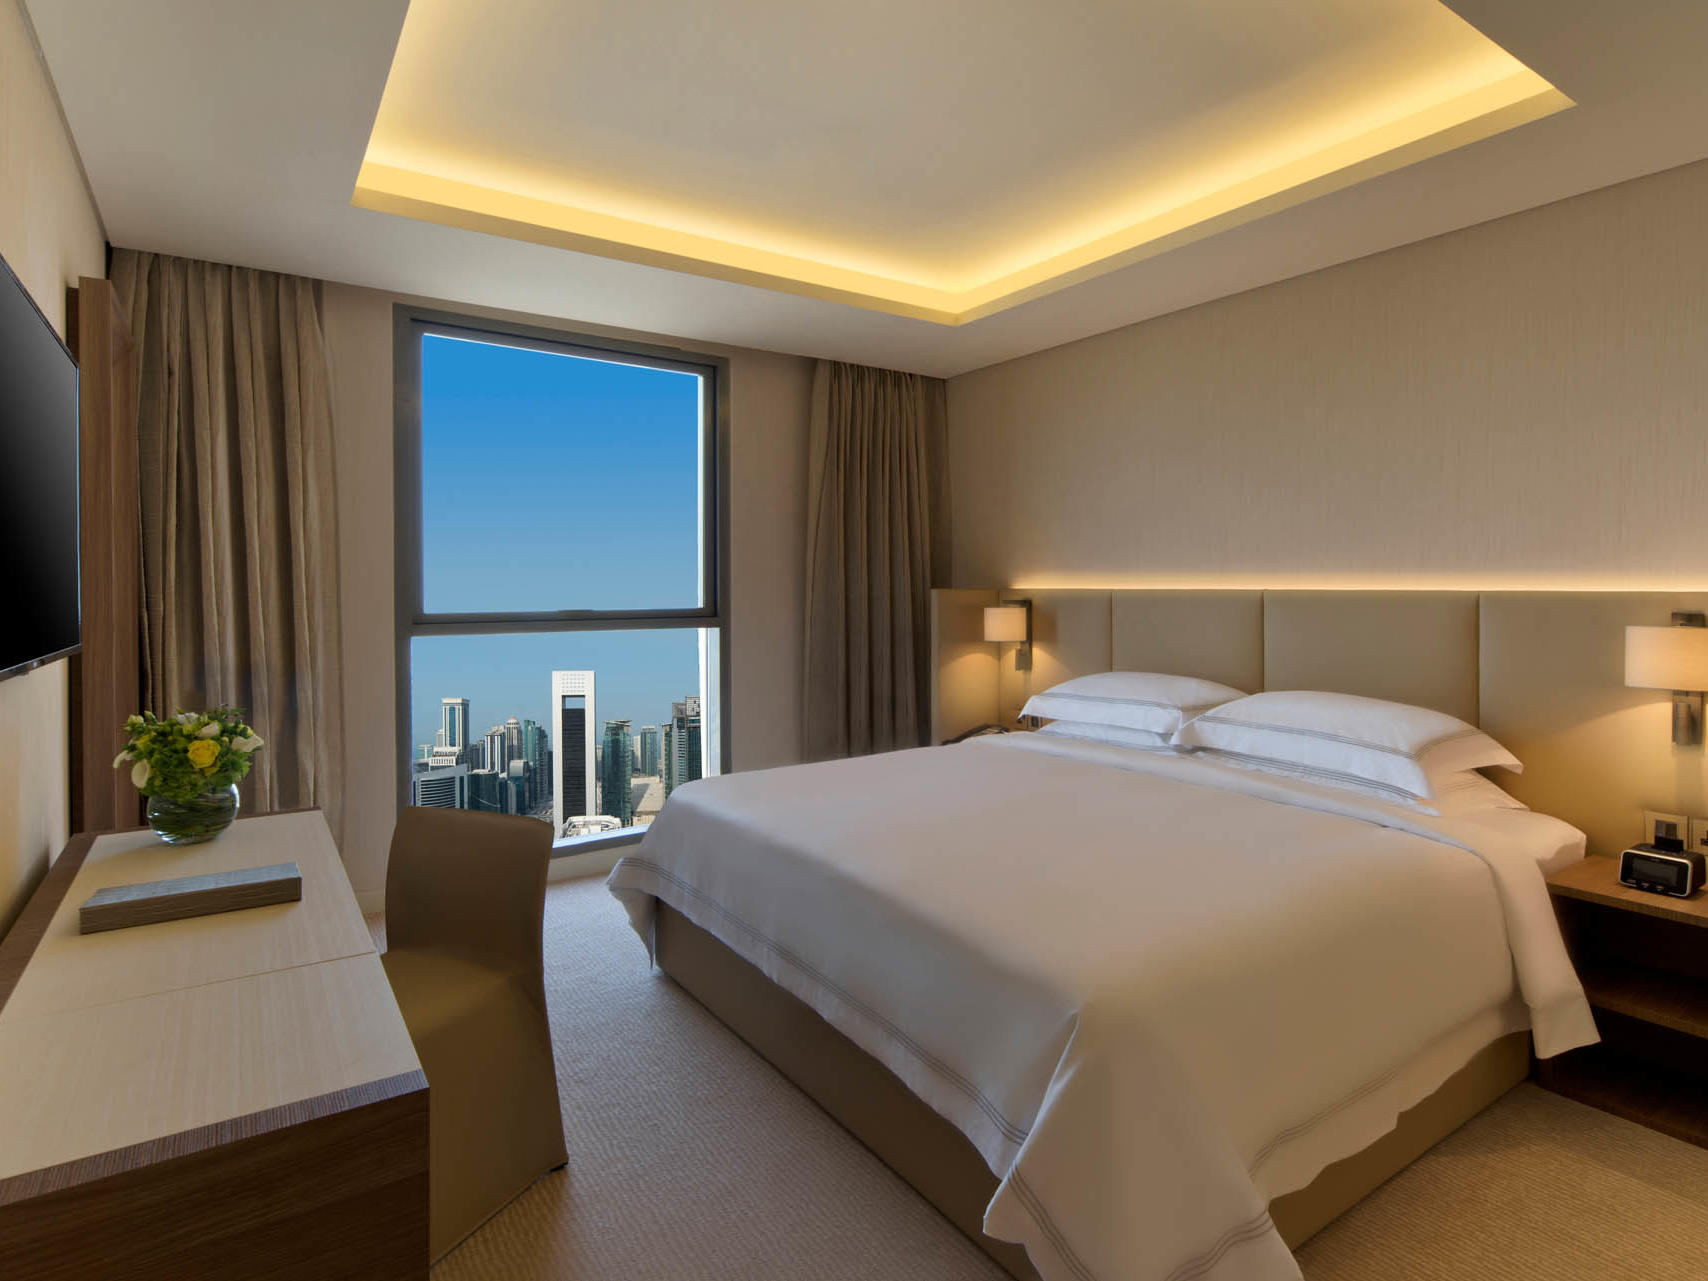 One bedroom suite at Rabban Suites in Doha